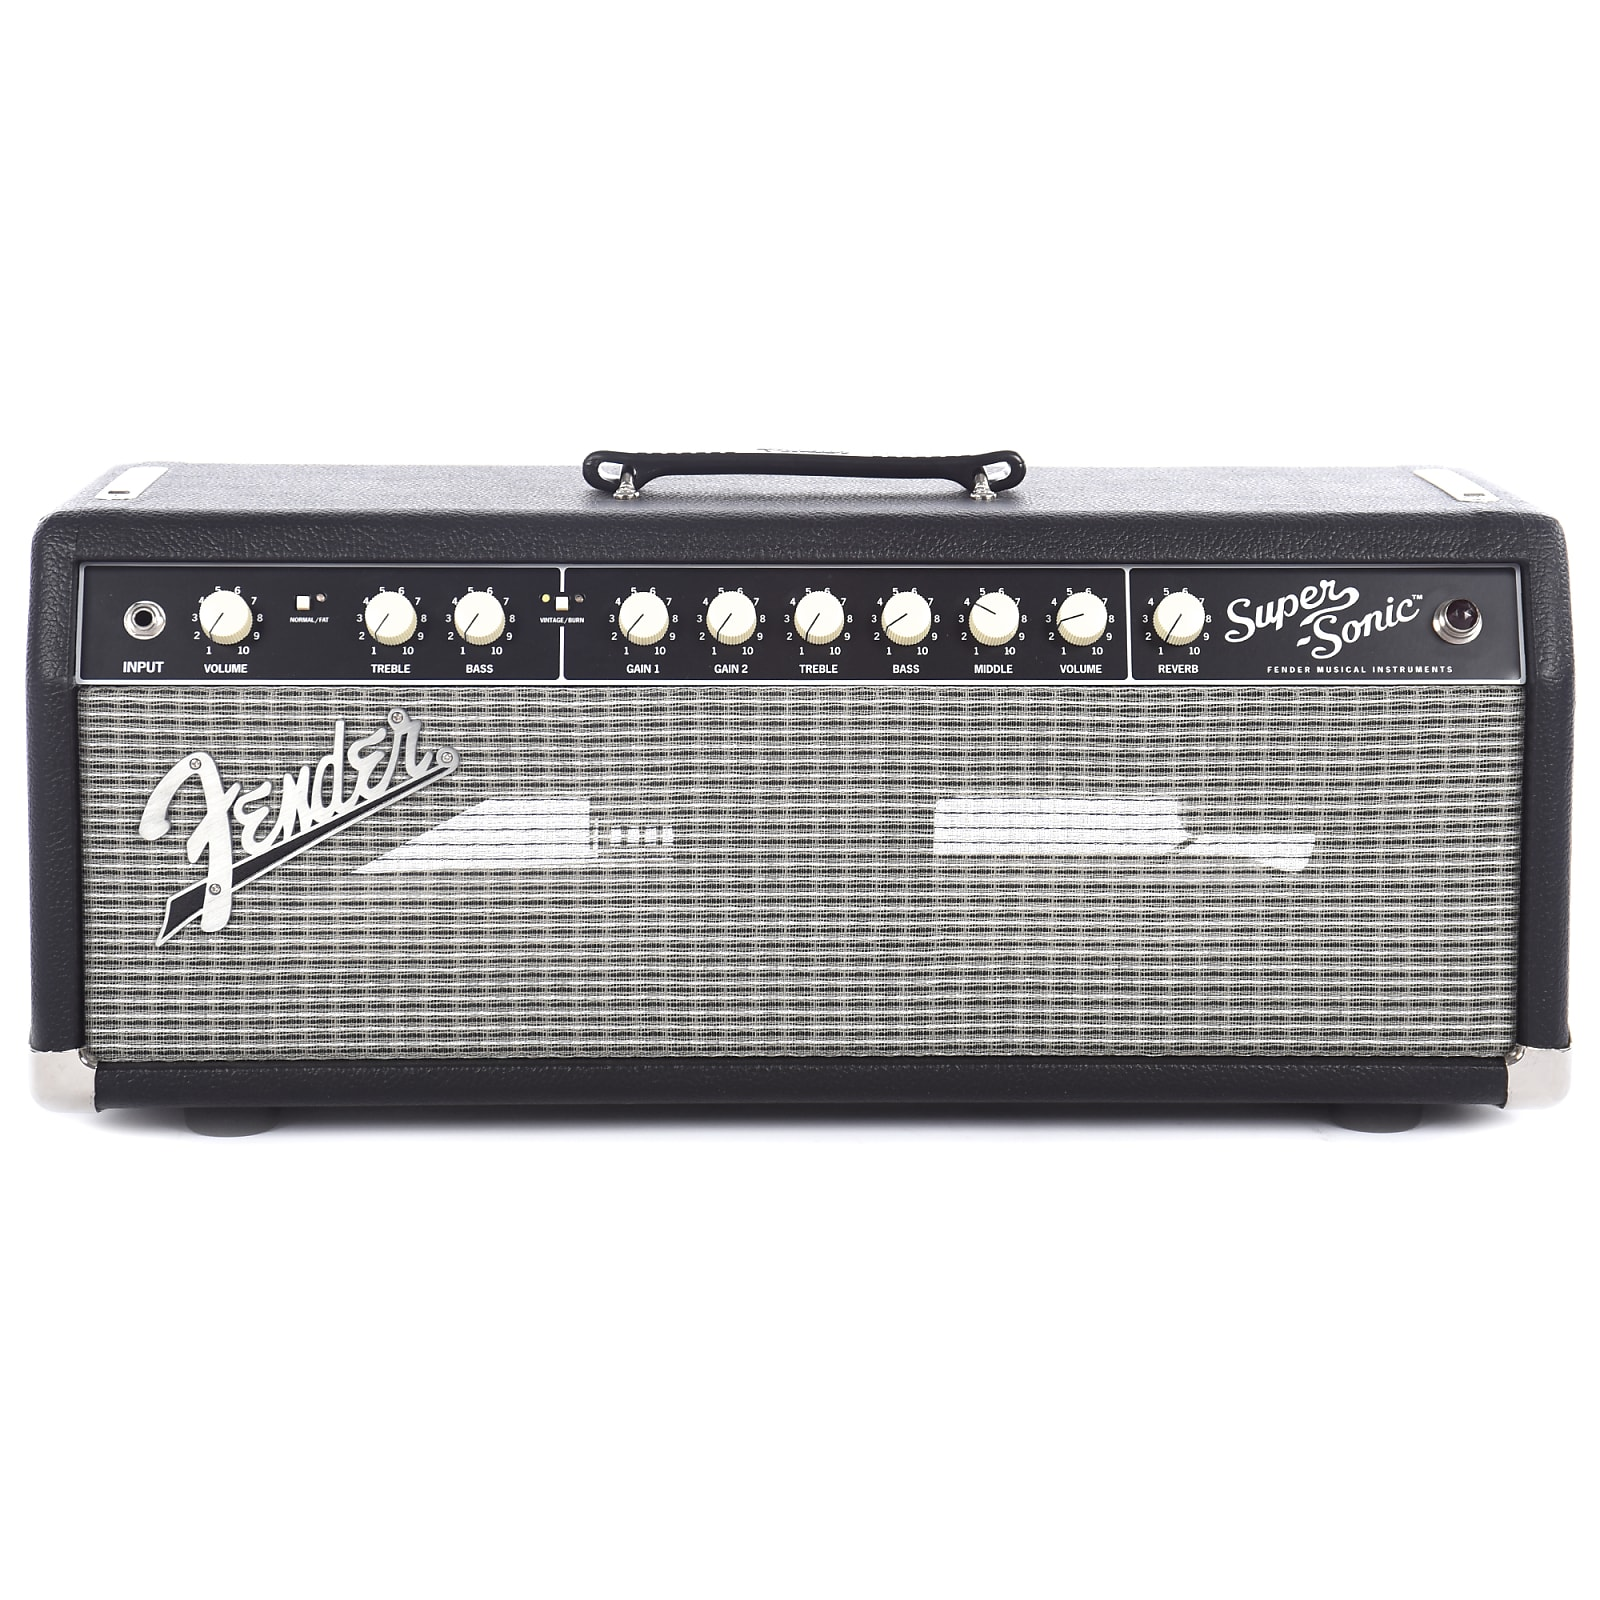 fender super sonic 22 2 channel 22 watt guitar amp head reverb. Black Bedroom Furniture Sets. Home Design Ideas